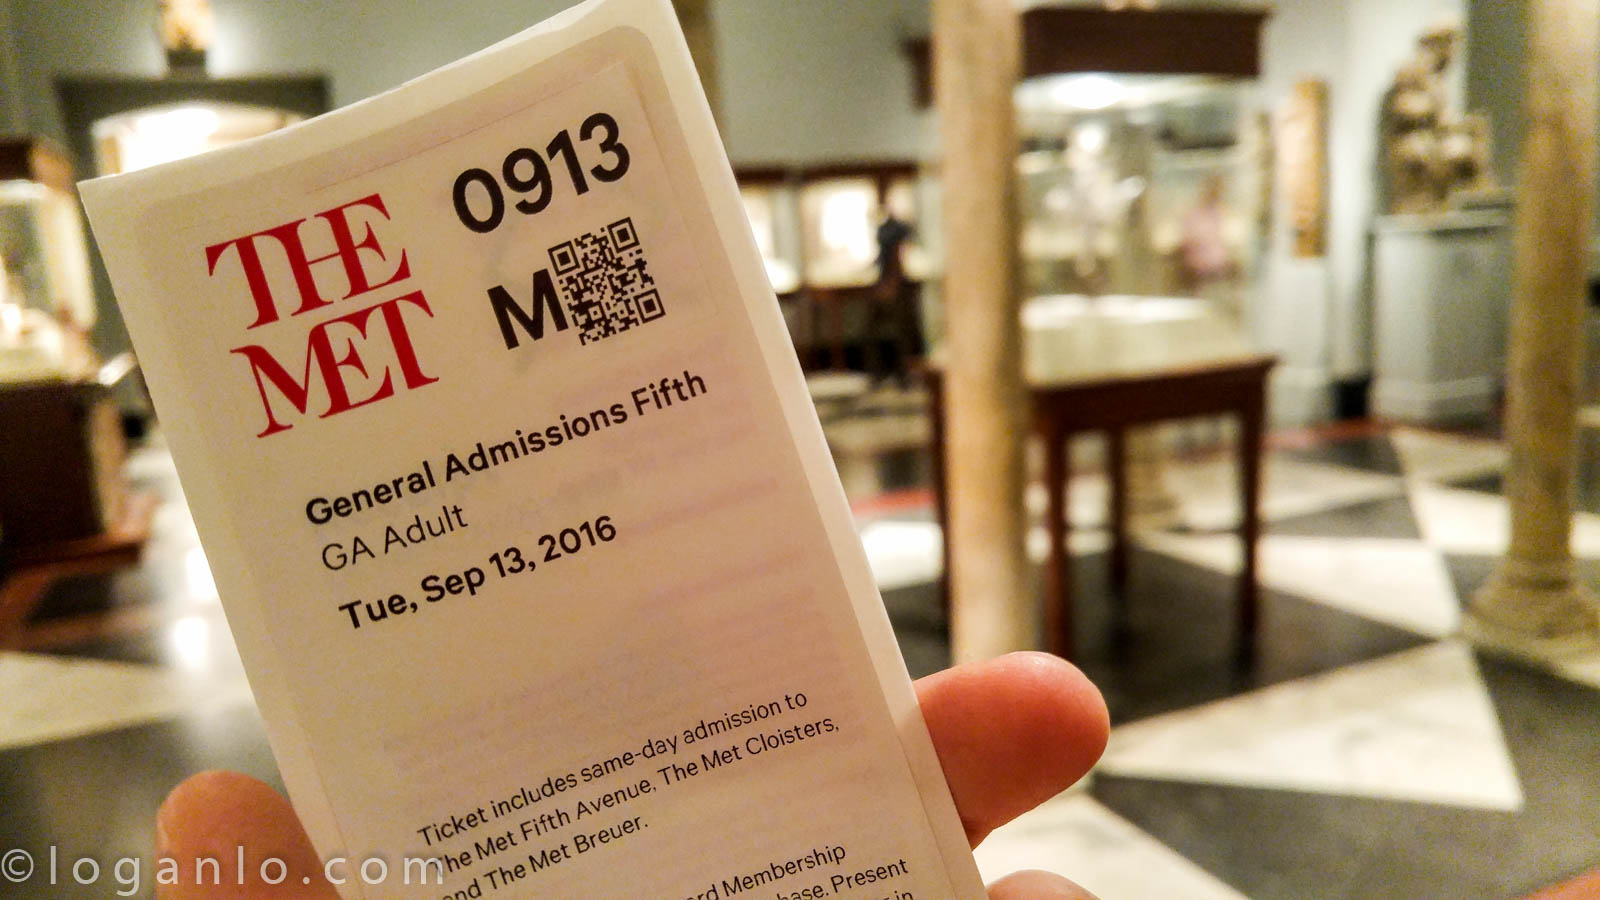 Admission Ticket for The Met